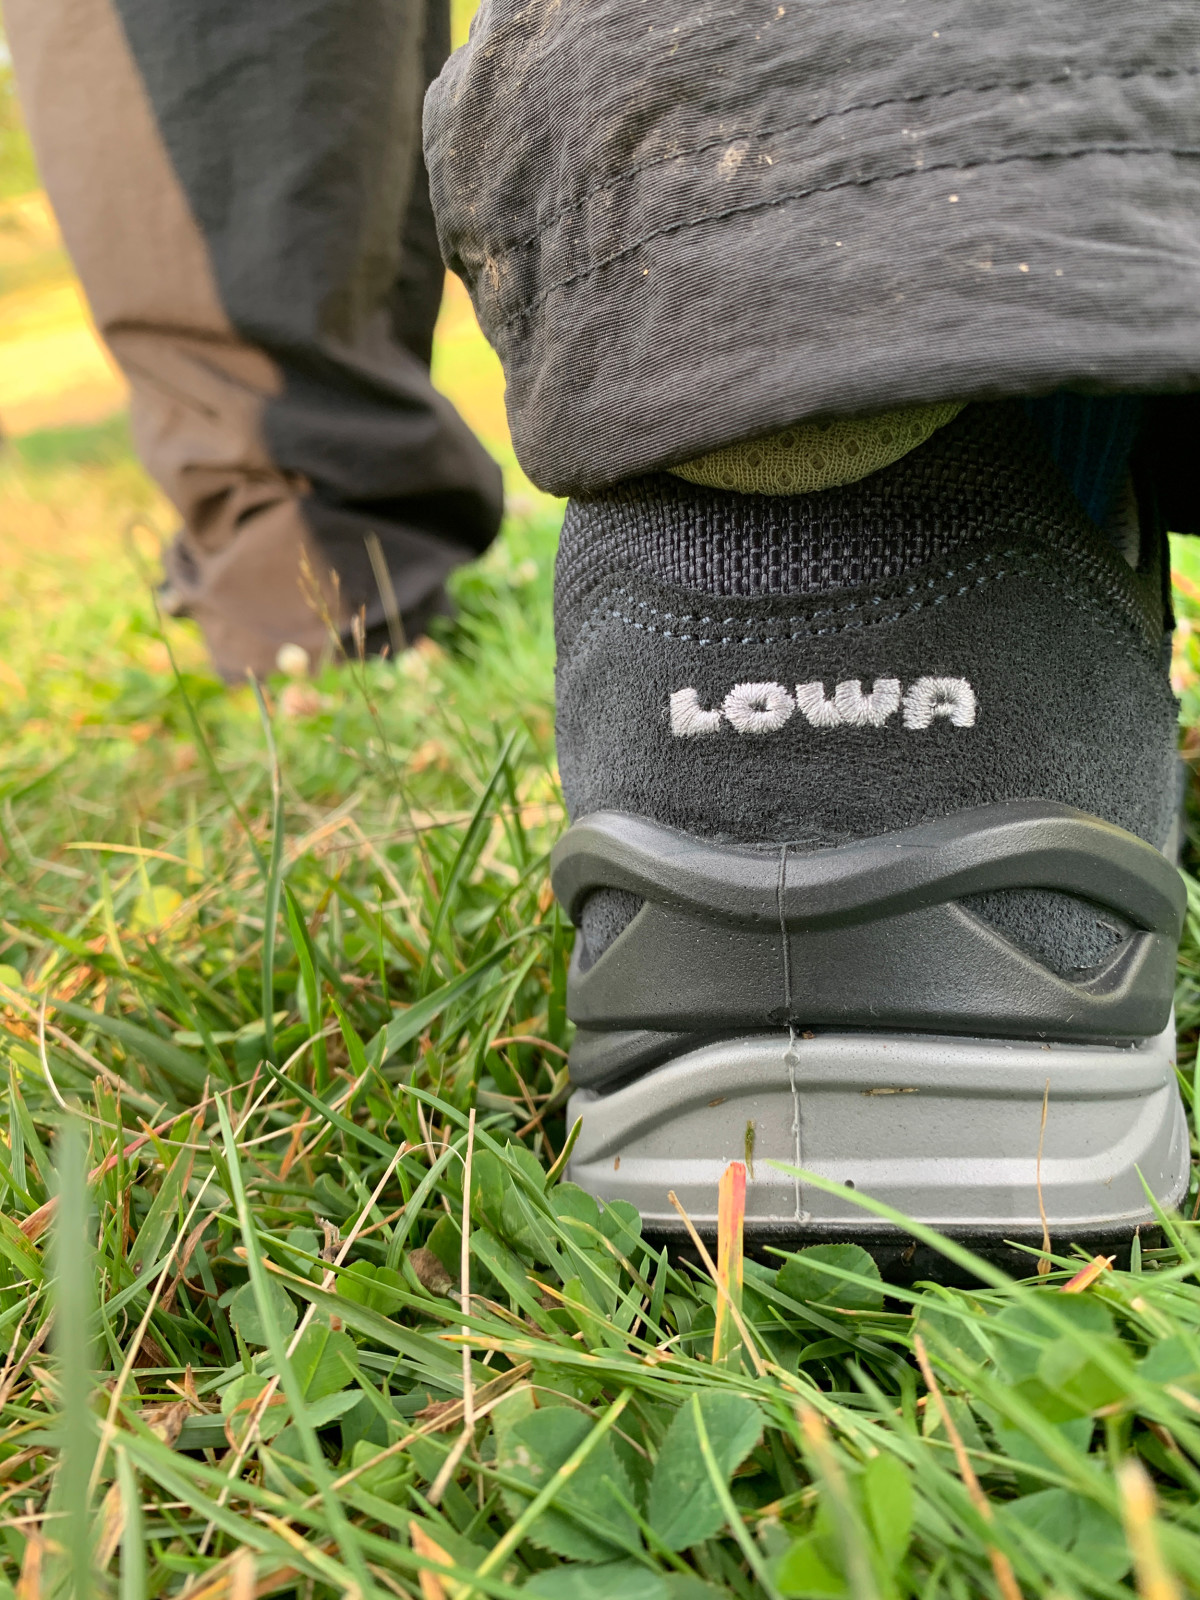 Unbelievably snug, athletically flexible and truly multifunctional, LOWA's new TORO EVO GTX LO Ws is the perfect companion for everyday adventures. After work or on weekends – these jack-of-all-trades outdoor boots are so comfortable and snug, that a brief stroll can spontaneously turn into a short hike. The GORE-TEX membrane ensures optimal weather protection and excellent breathability.